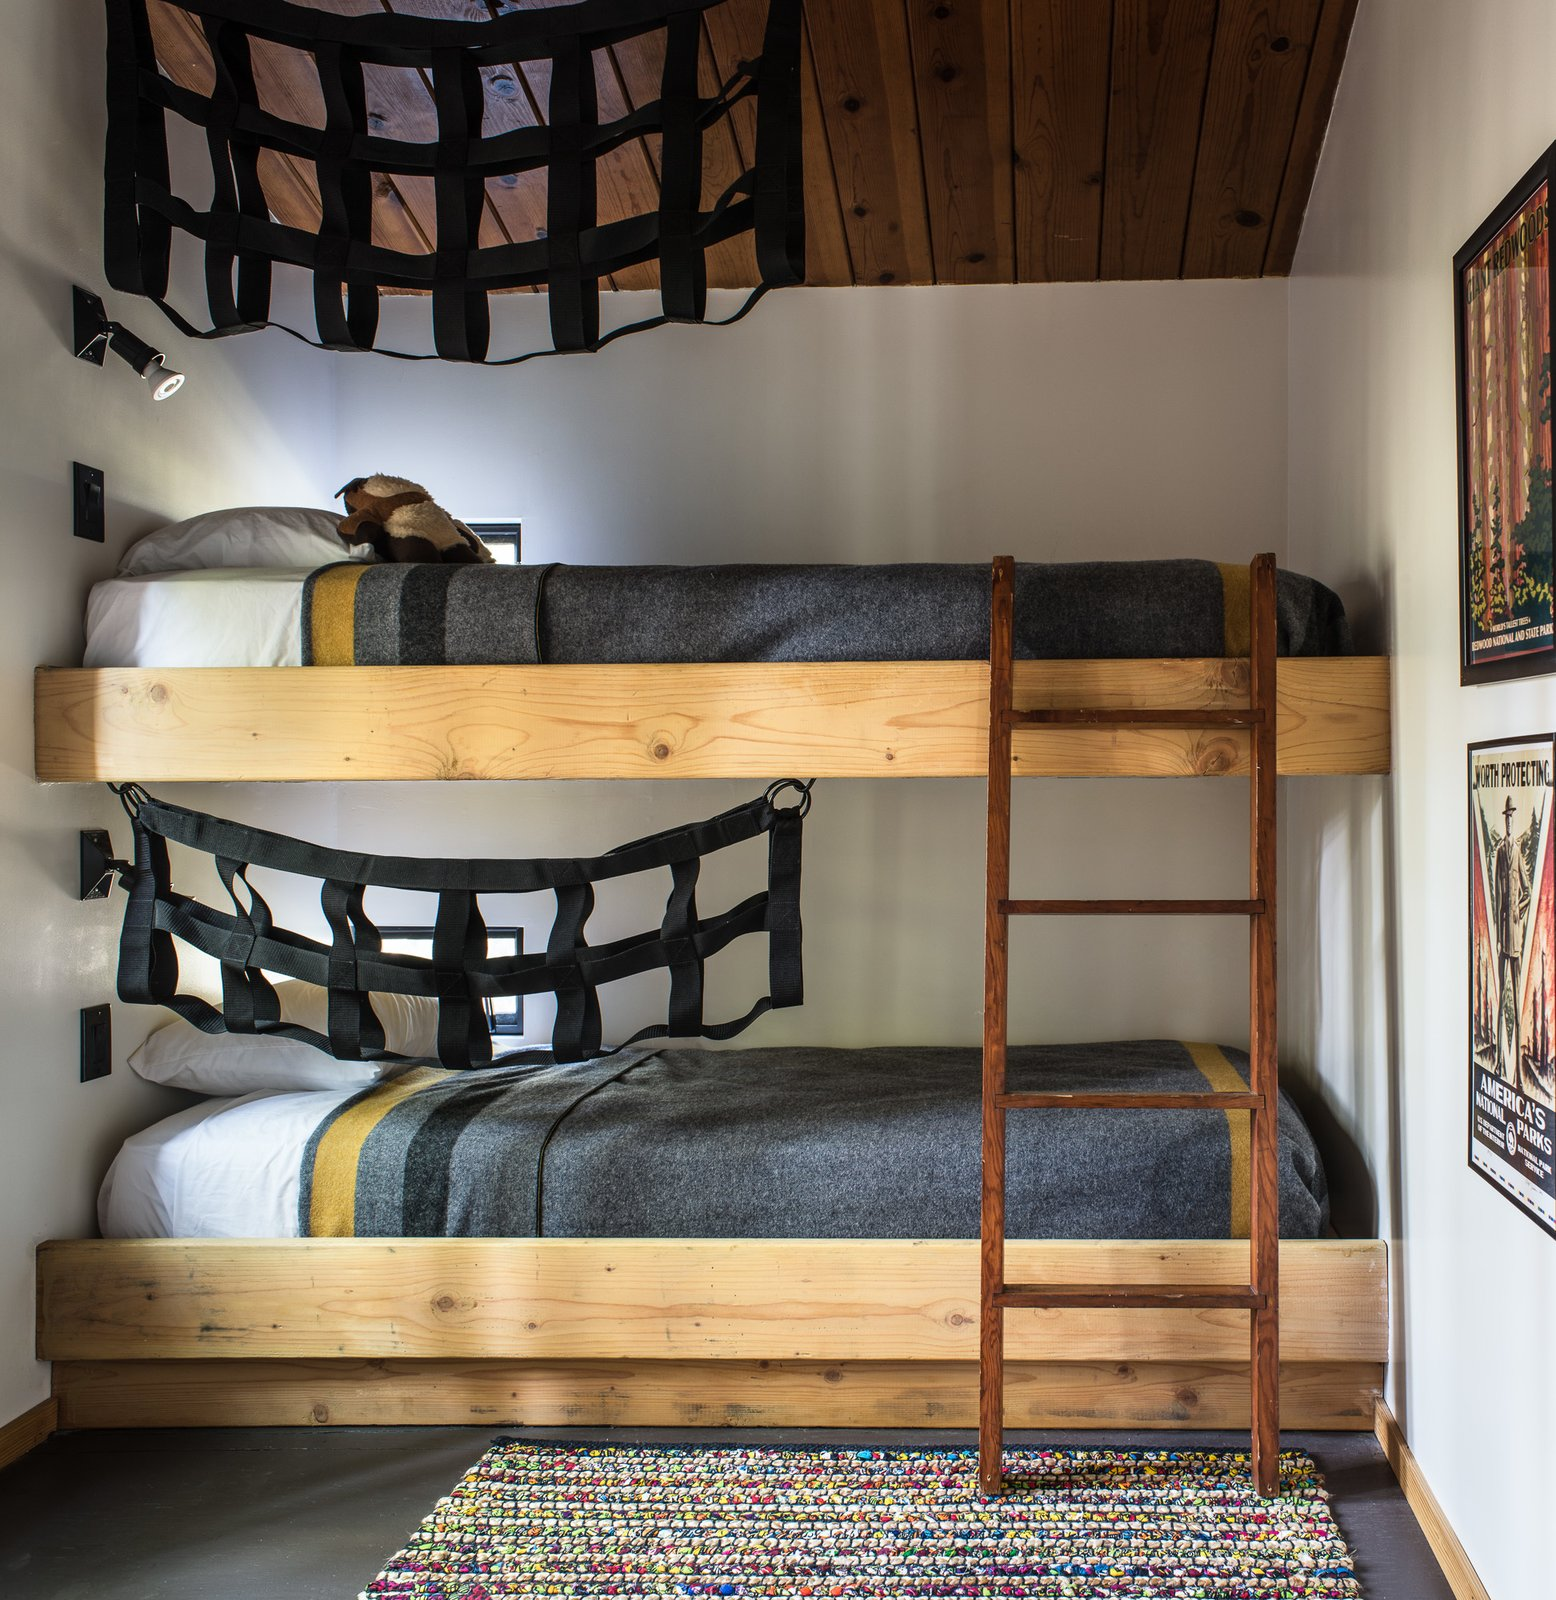 In the second bedroom, built-in bunk beds add an element of playfulness, decorated with black netting.